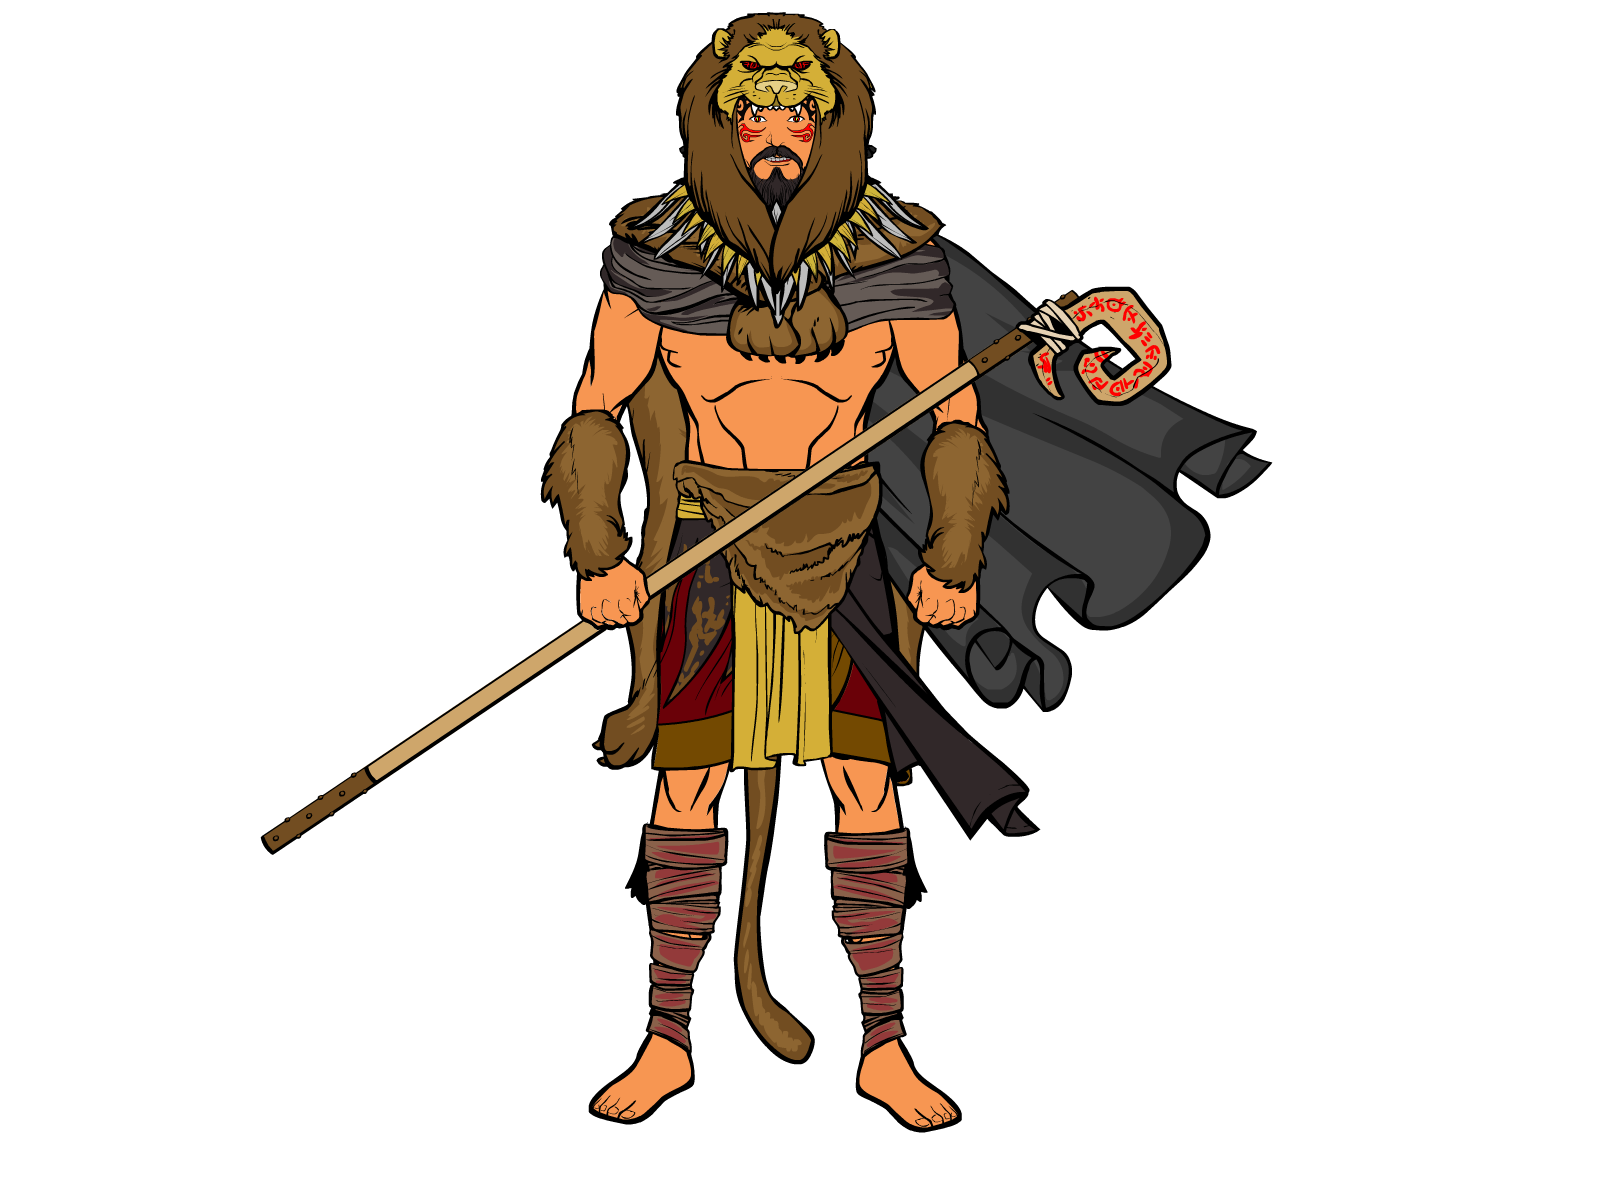 http://www.heromachine.com/wp-content/legacy/forum-image-uploads/nha247/2012/03/Kerchak.png